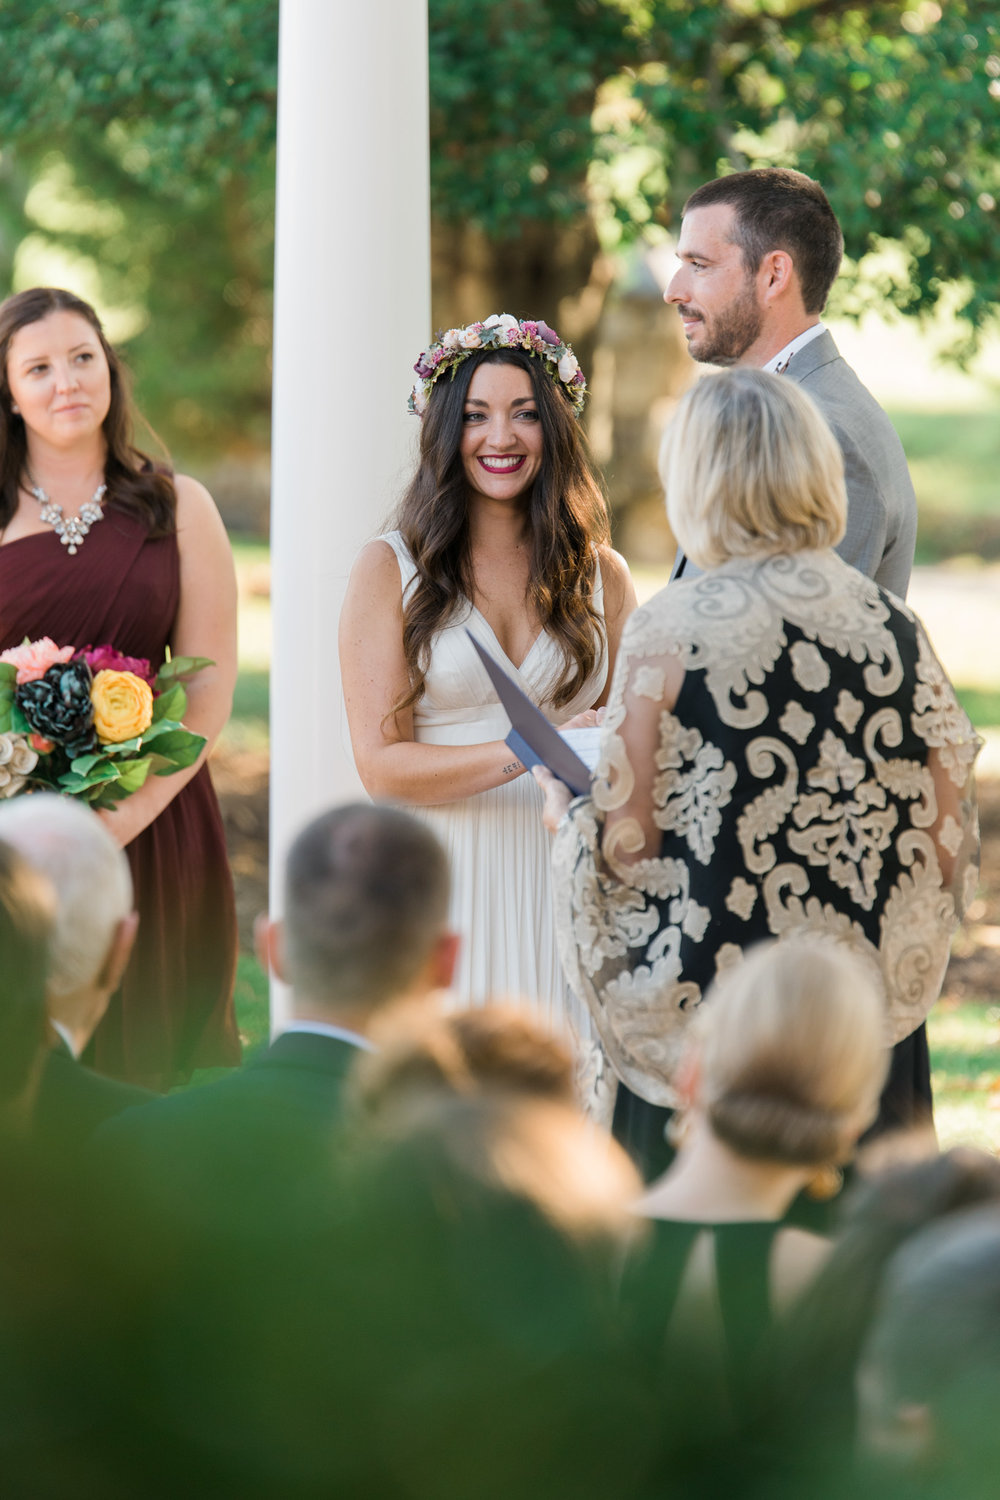 The_Trivium_Estate_Forest_VA_Wedding_Flower_Crown_boho_wedding_classic_wedding_Virginia_Wedding_photographer052.jpg